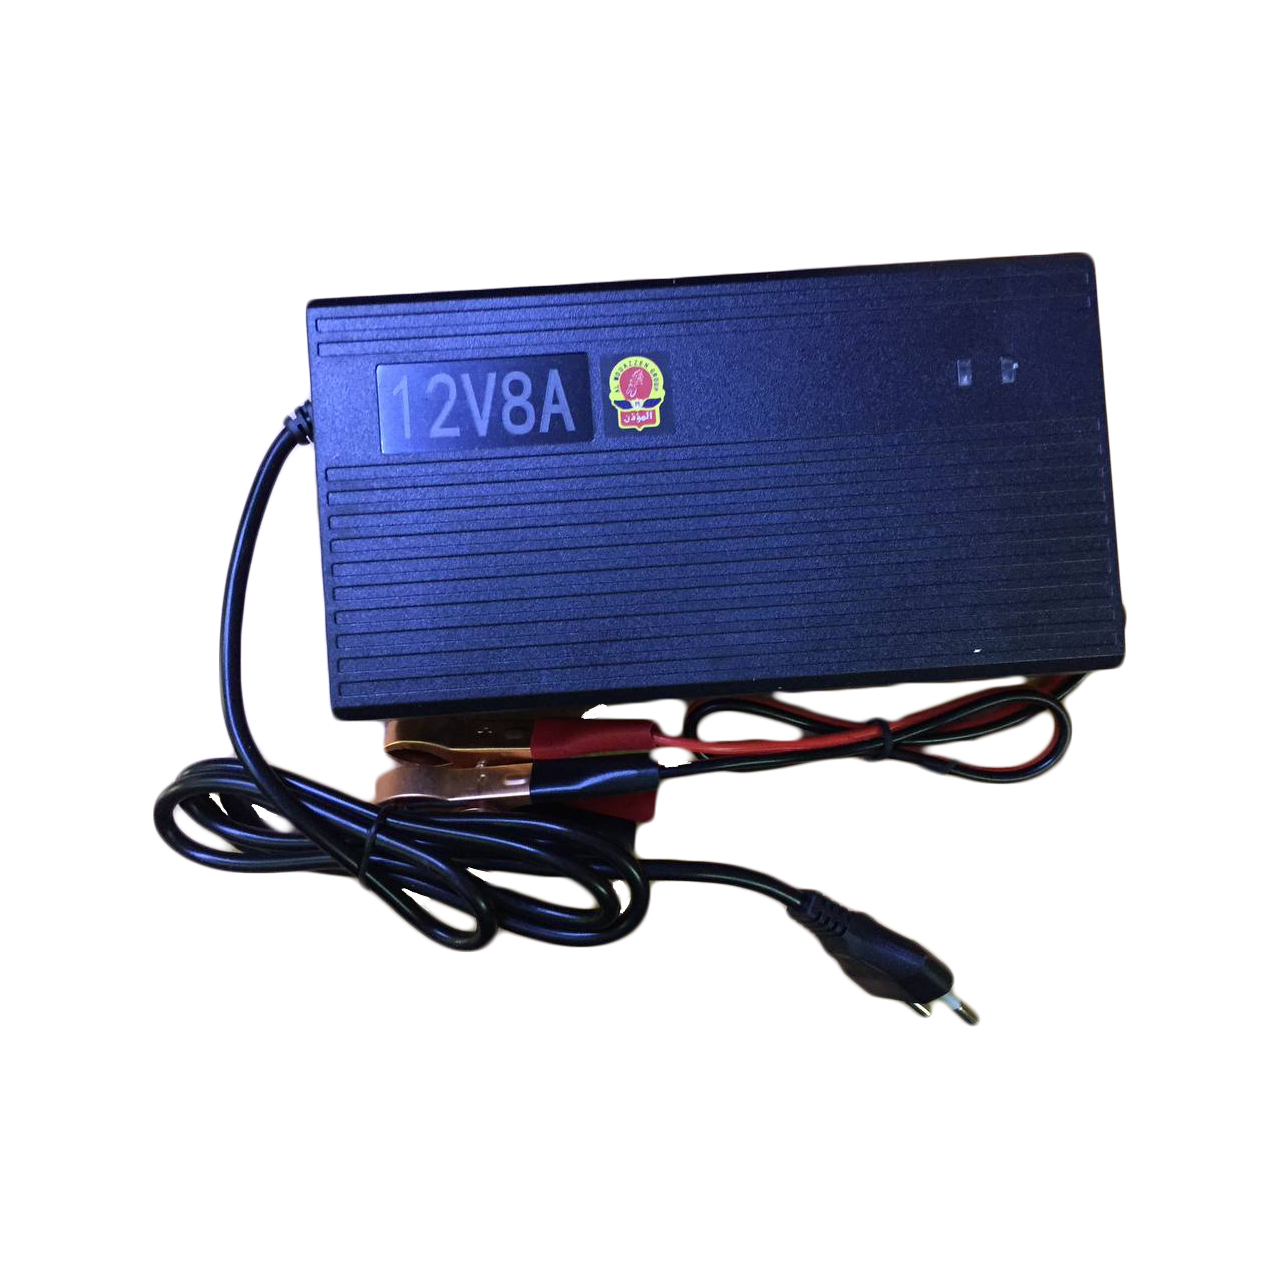 CHARGER UNUNIQA FOR UPS BATTERY 12V  8A  -1208A شاحن المؤذن ,Battery Charger